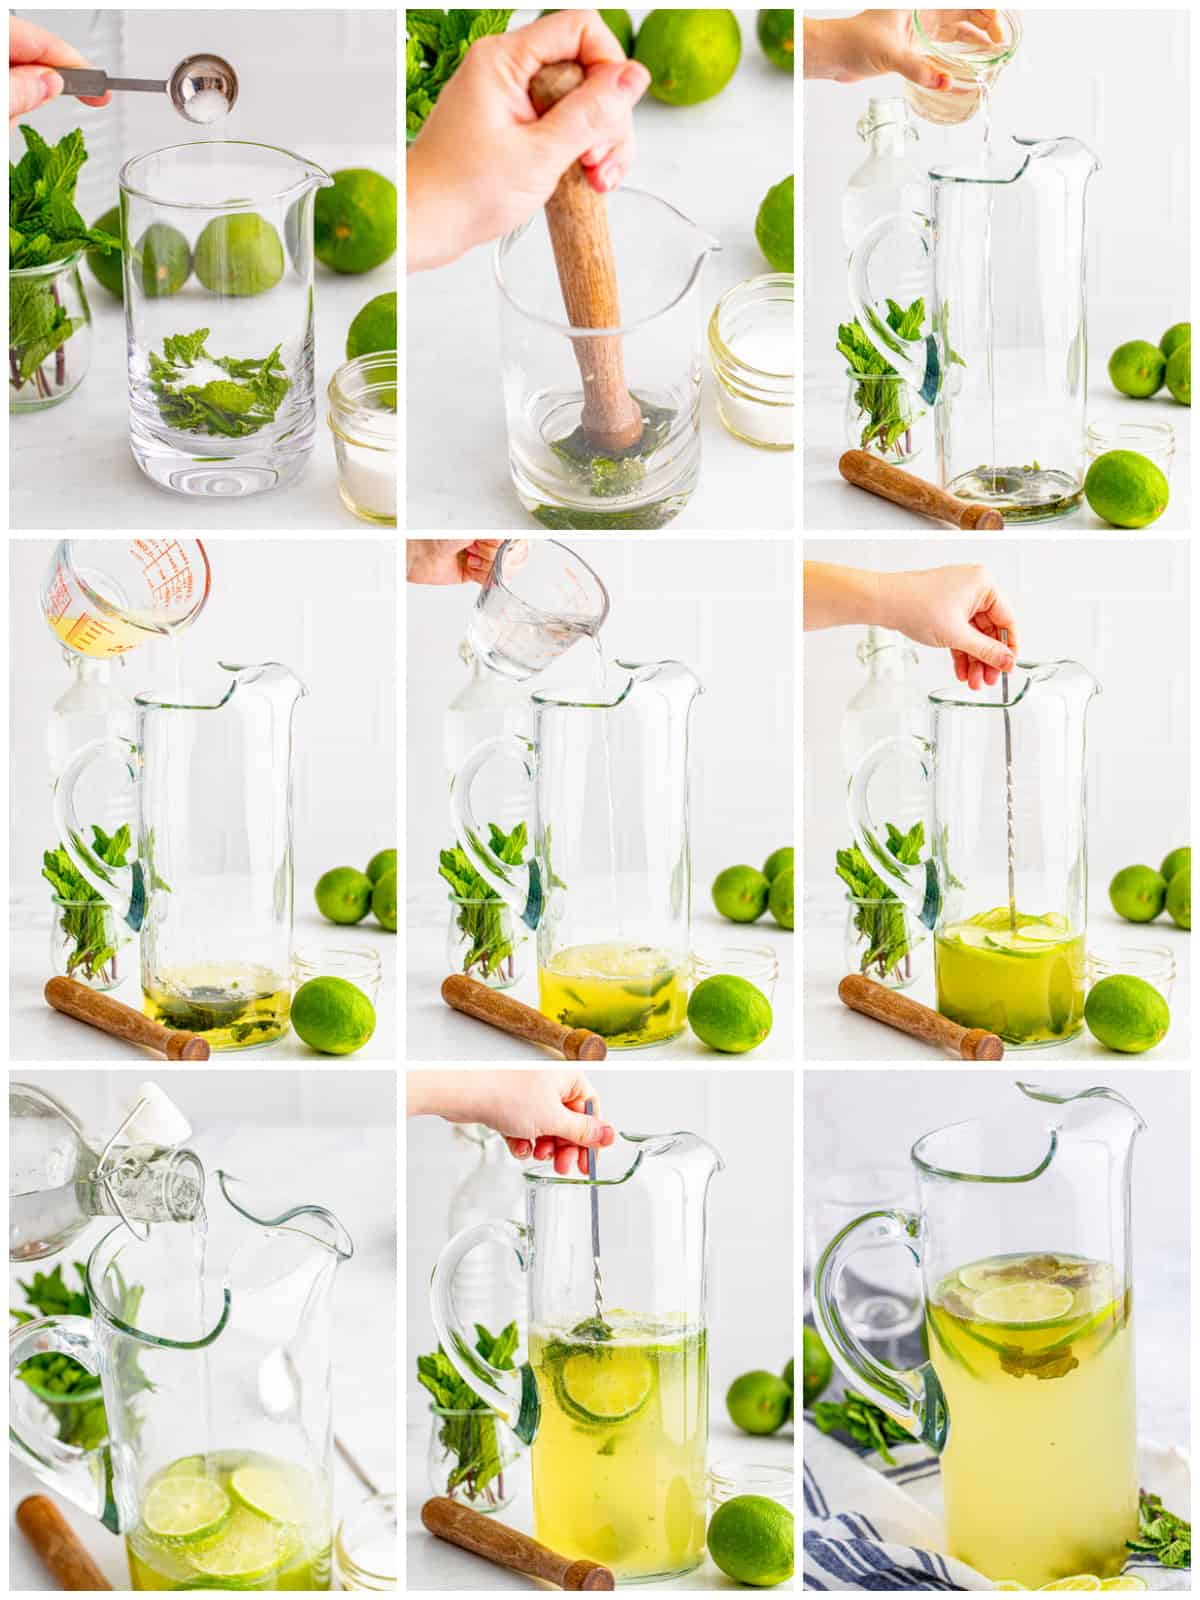 Step by step photo on how to make Pitcher Mojitos